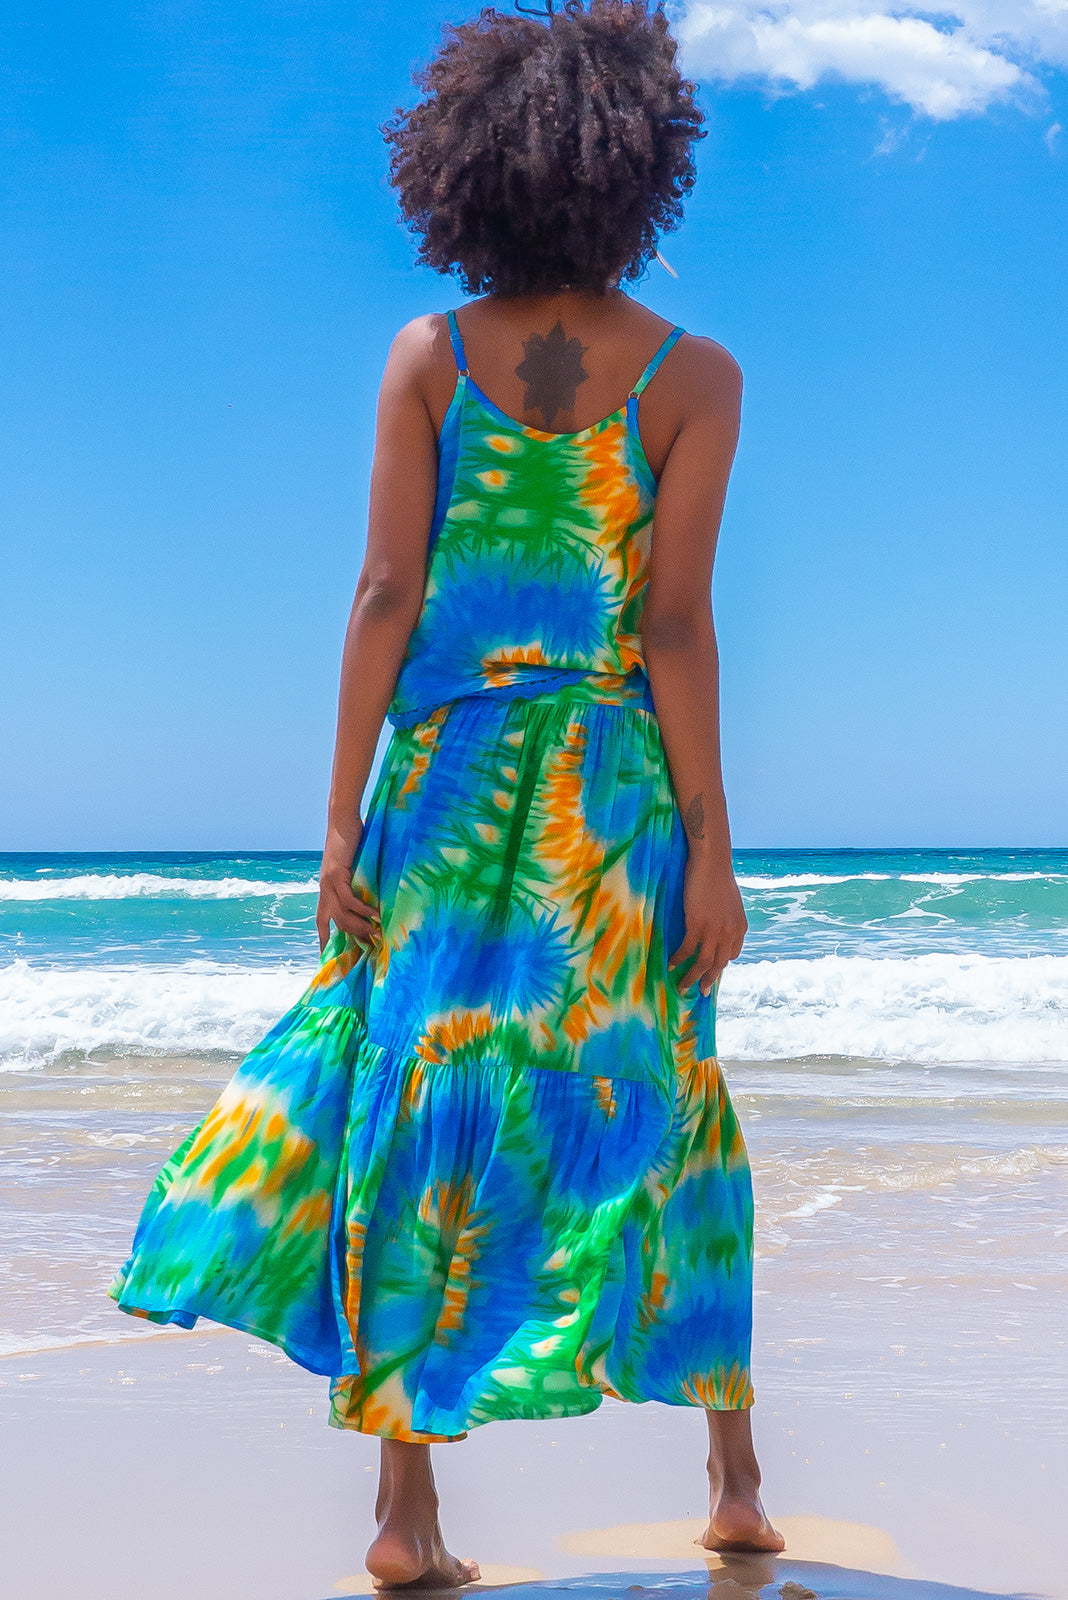 The Valencia Ocean Tie Dye Cami Top features adjustable tie front neckline, bead detail on neck ties, lace detail on hem and 100% rayon in tie dye print of blue, green and yellow.